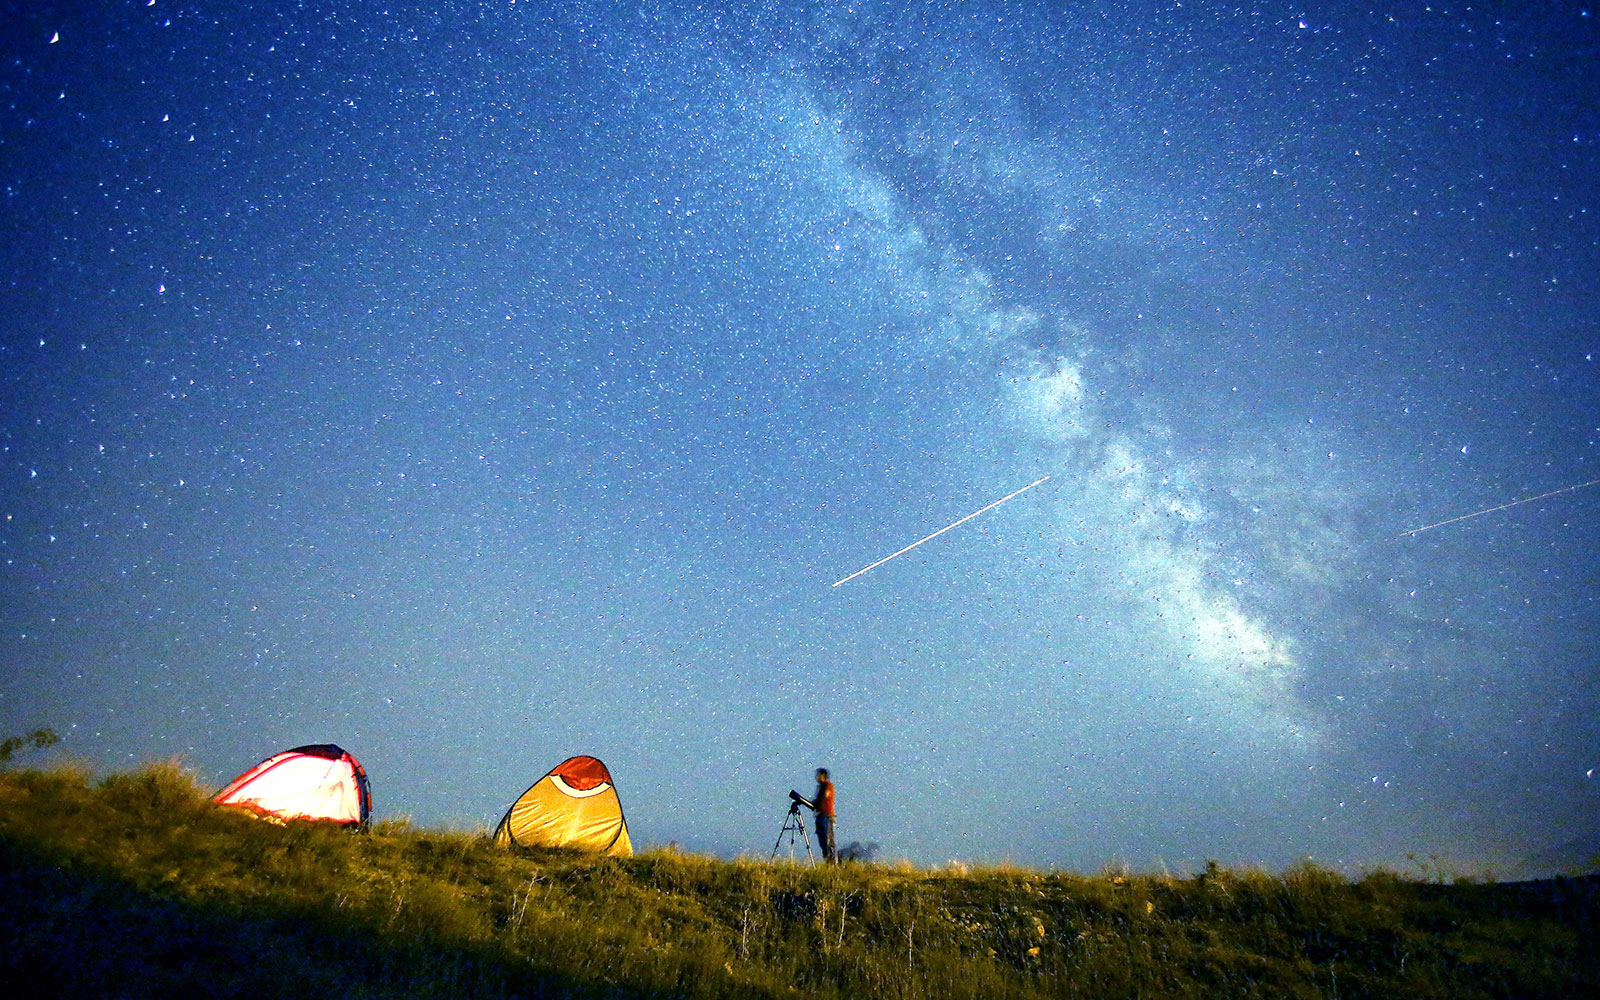 PERSEID0815-meteor-shower.jpg